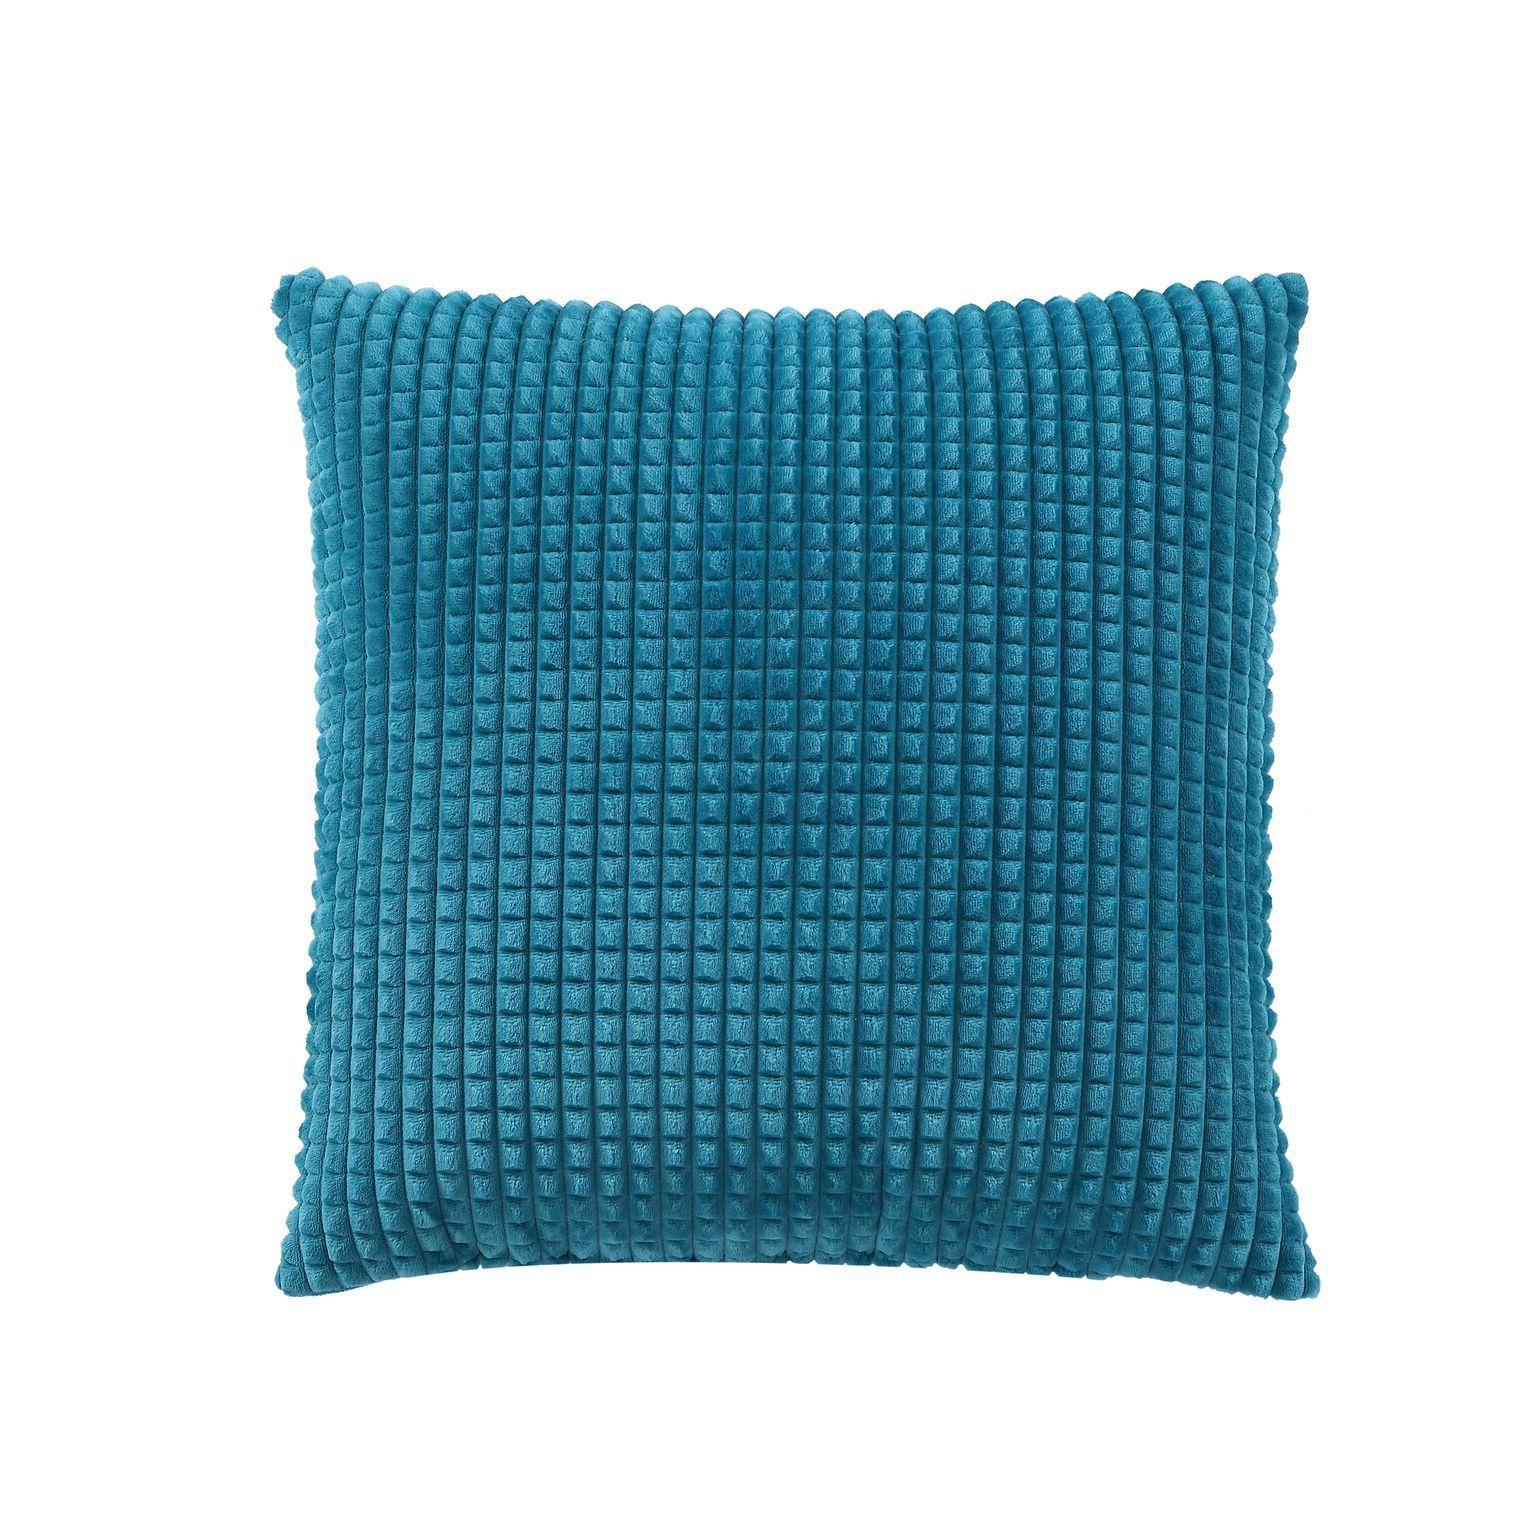 Ultra Plush & Tufted Throw Pillows - Colors